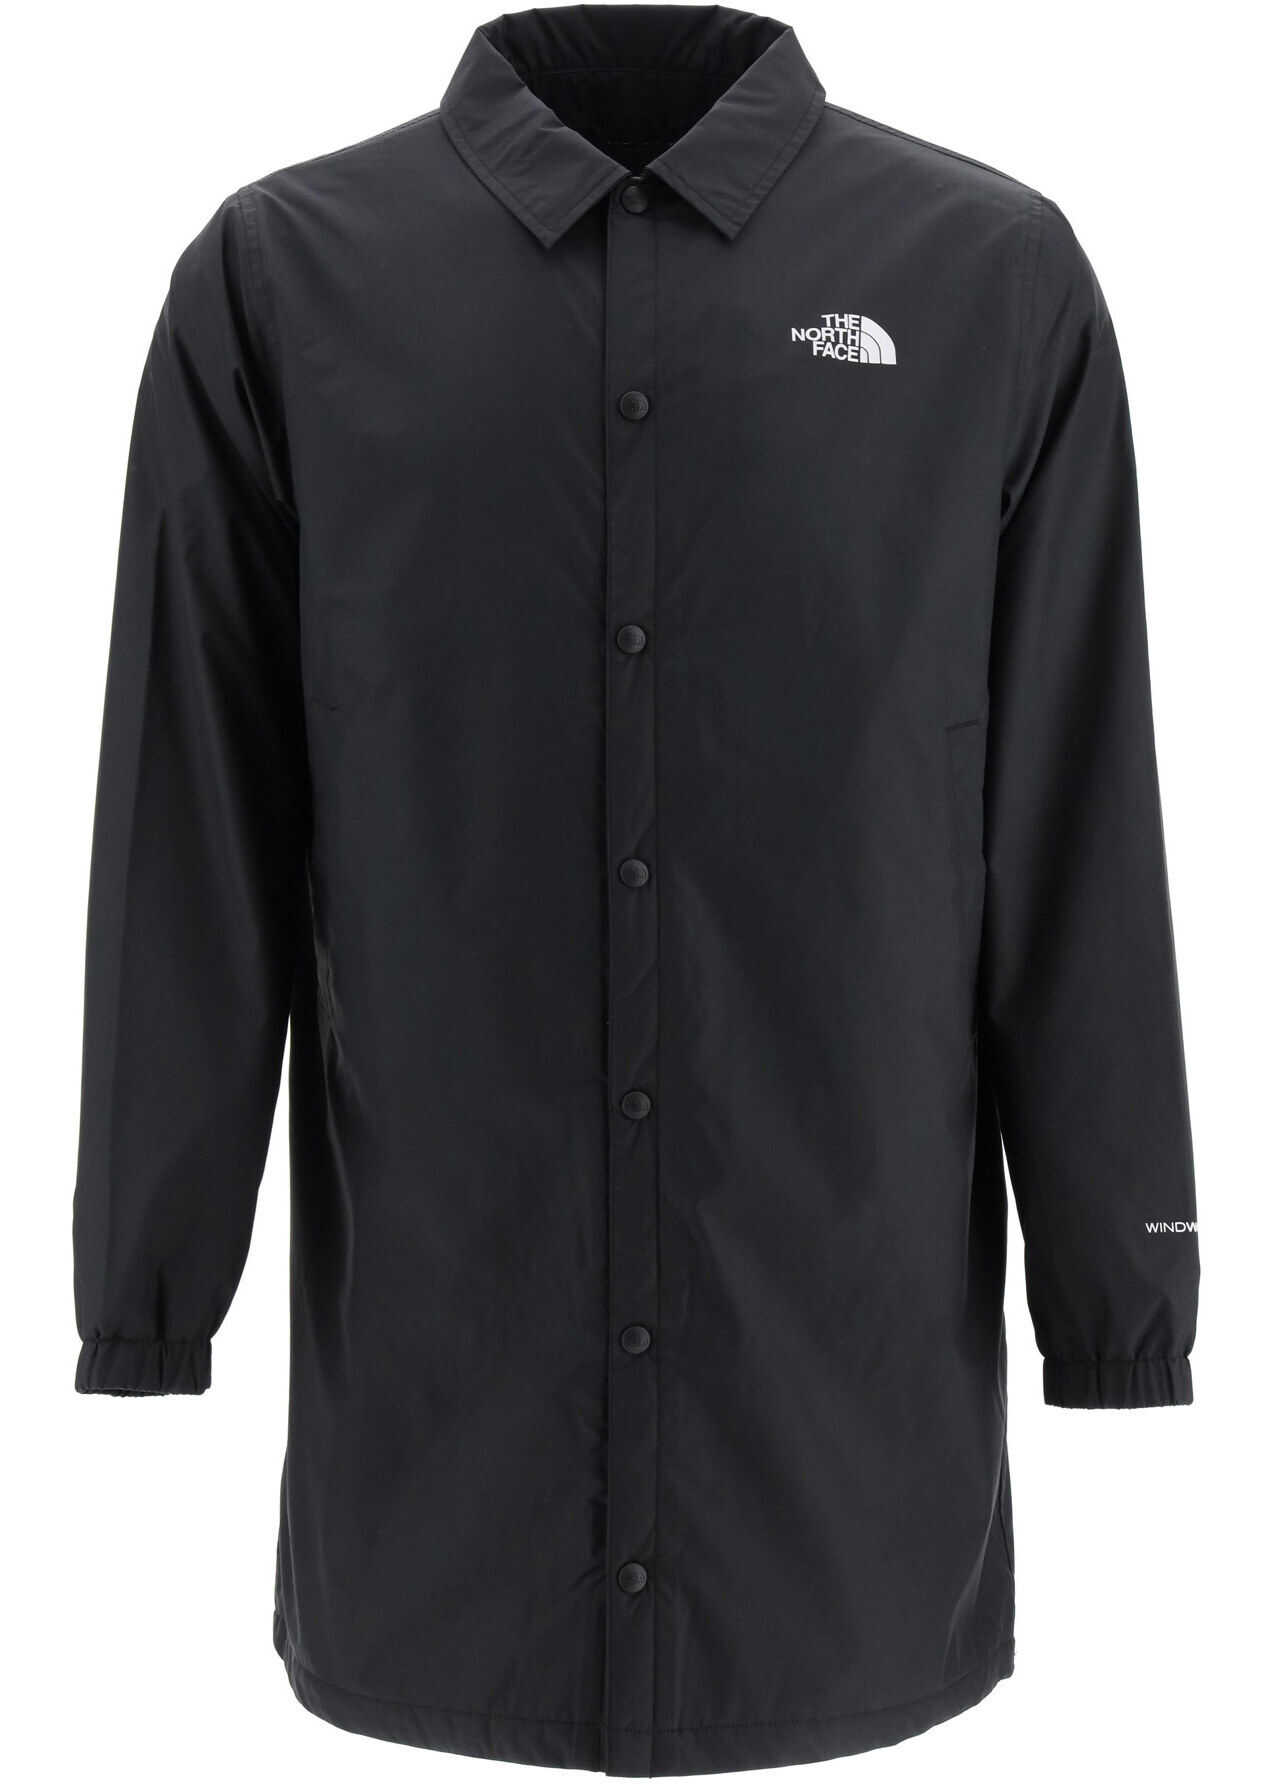 The North Face Coaches Telegraphic Rain Jacket BLACK